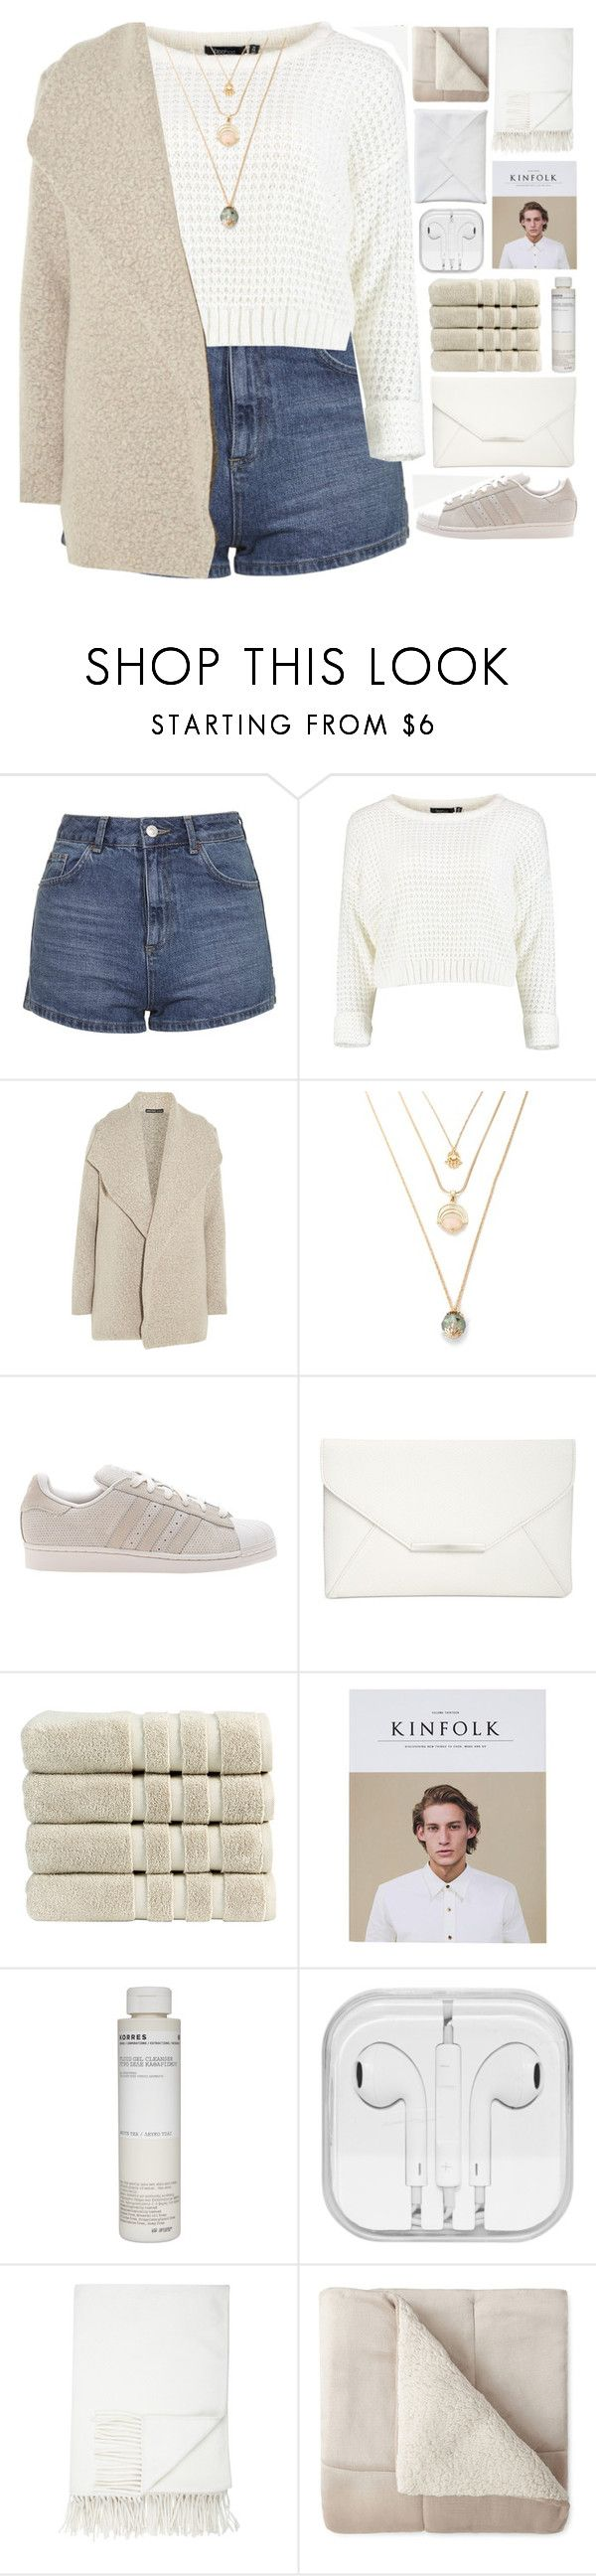 """""""#951"""" by giulls1 ❤ liked on Polyvore featuring Topshop, James Perse, adidas Originals, Style & Co., Christy, Korres, Barneys New York and JCPenney Home"""